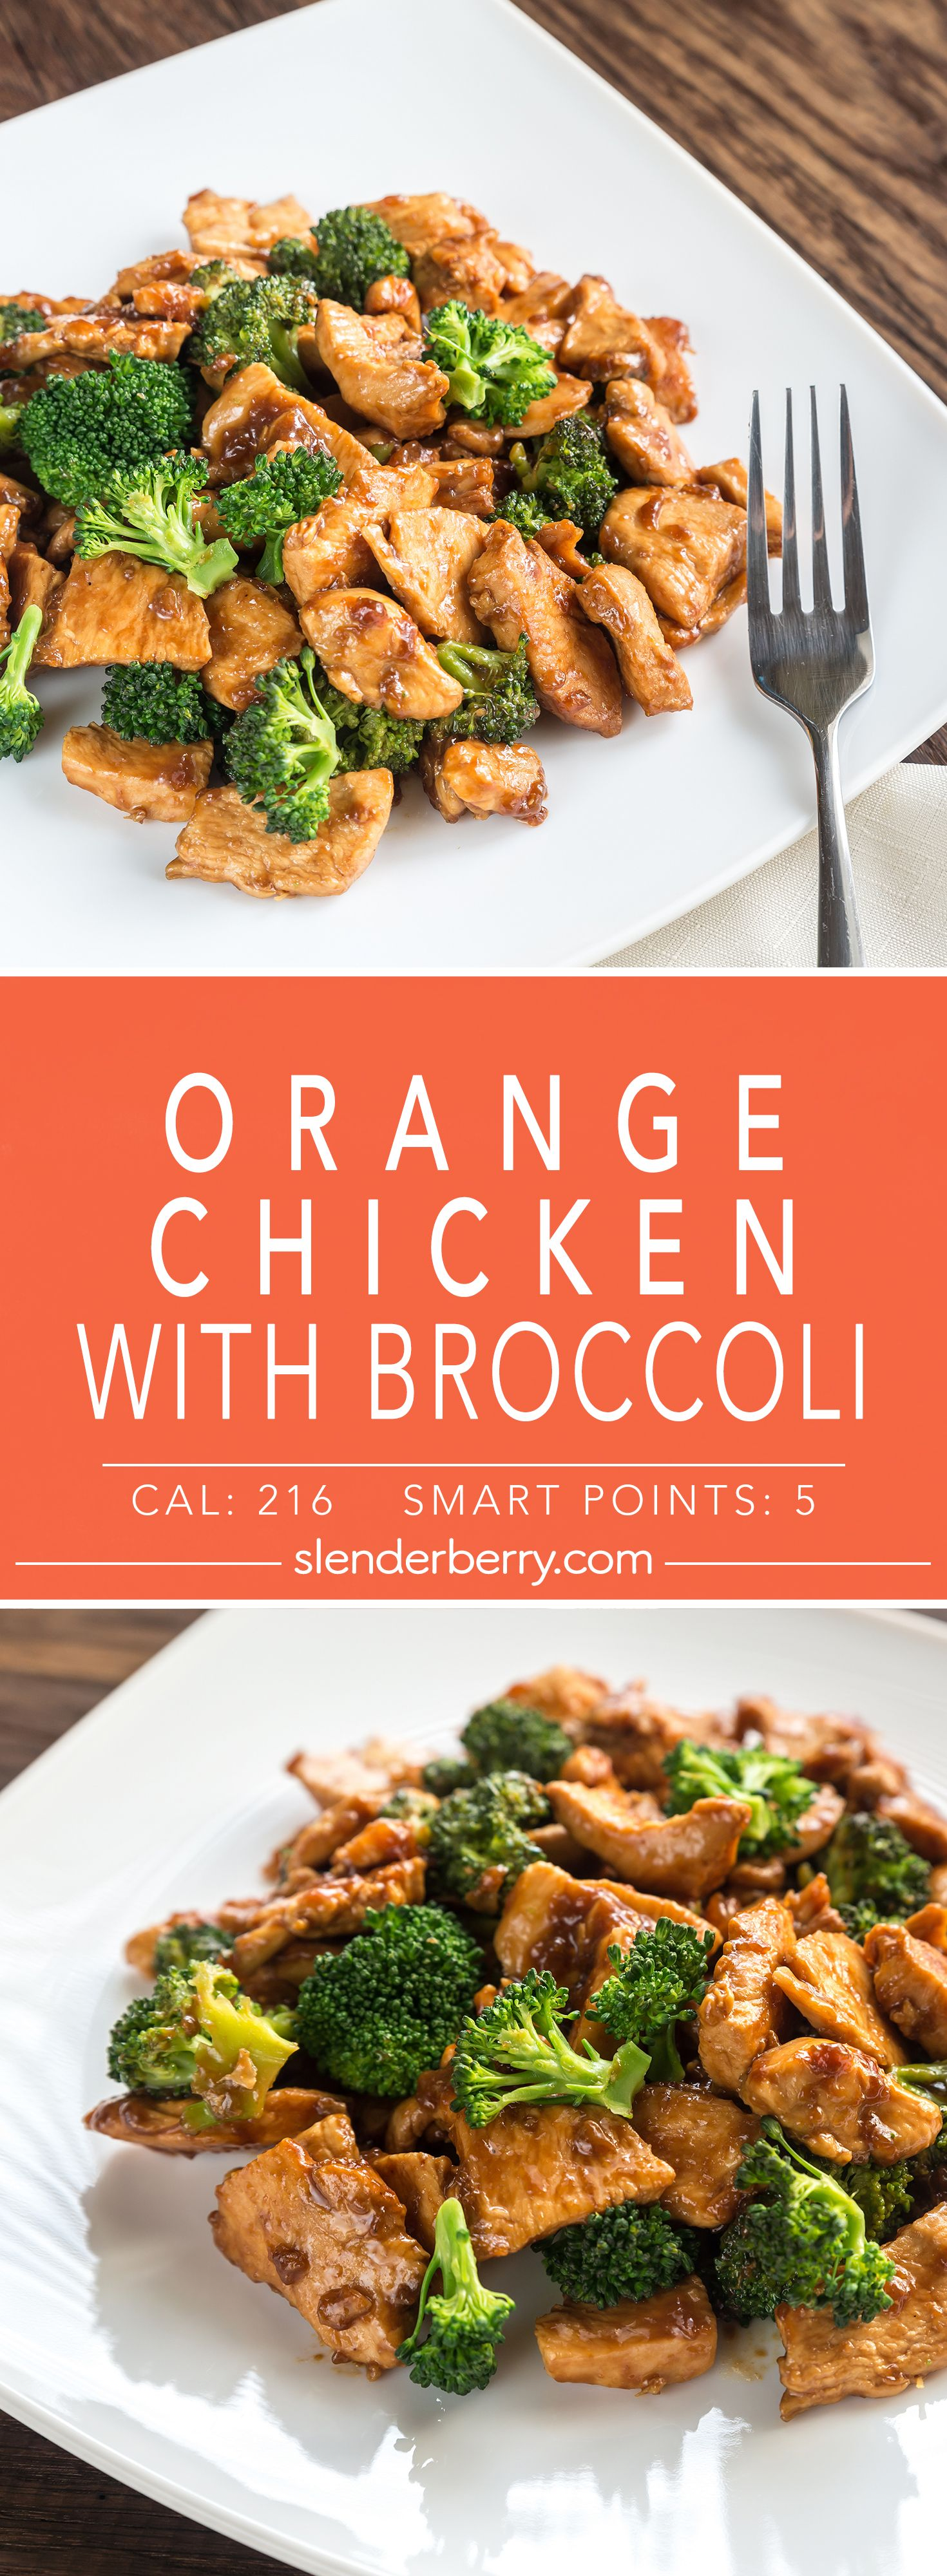 Orange Chicken with Broccoli #chineseorangechicken